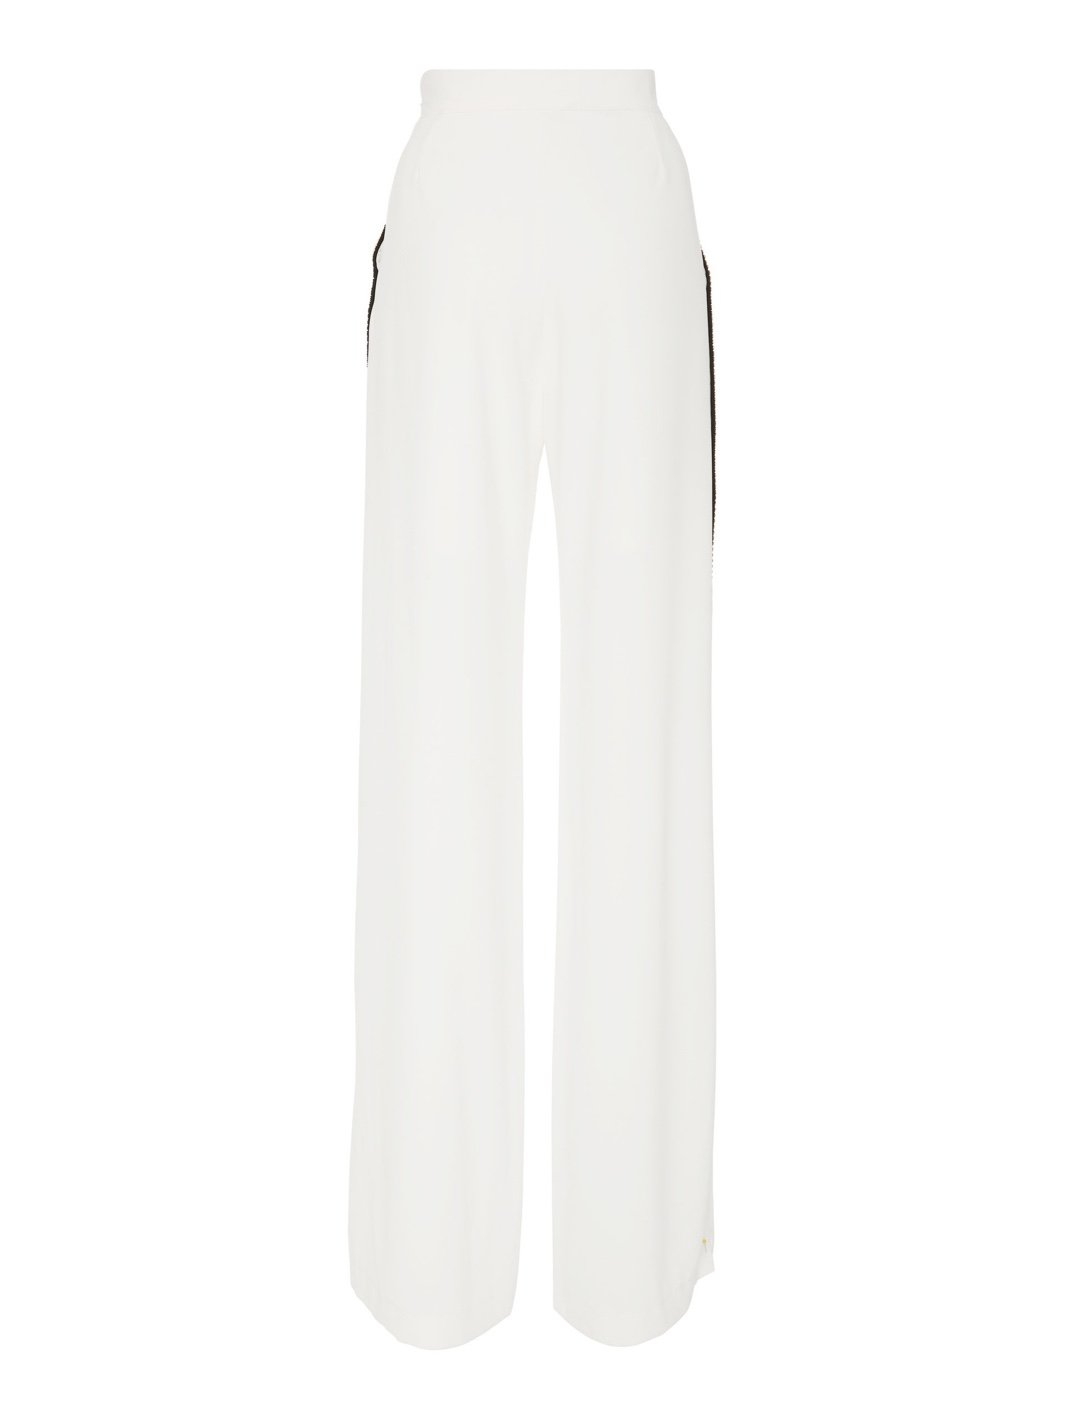 Amelianna B Wide Pants - The Bobby Boga